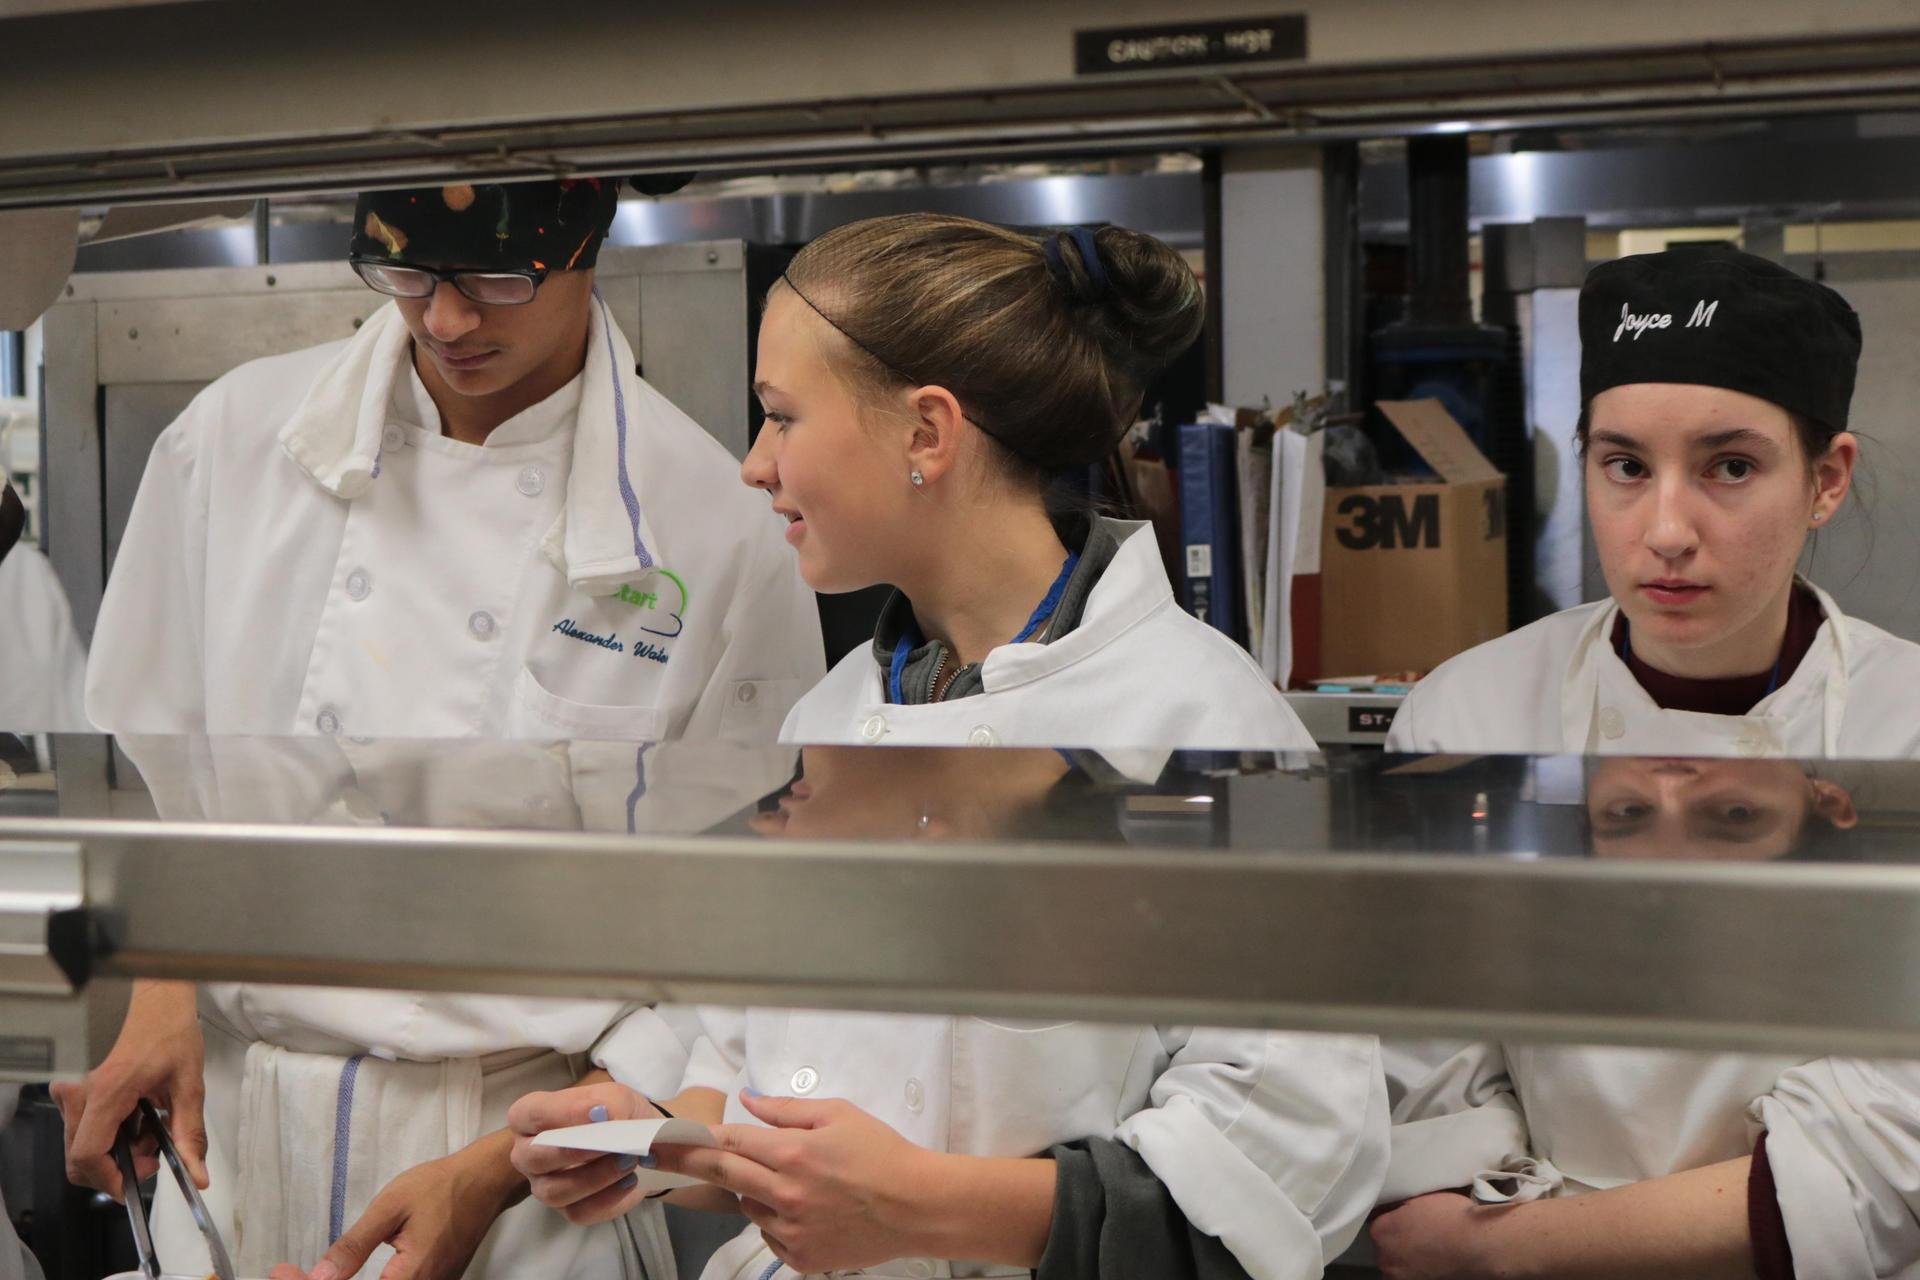 Students working on the line in kitchen